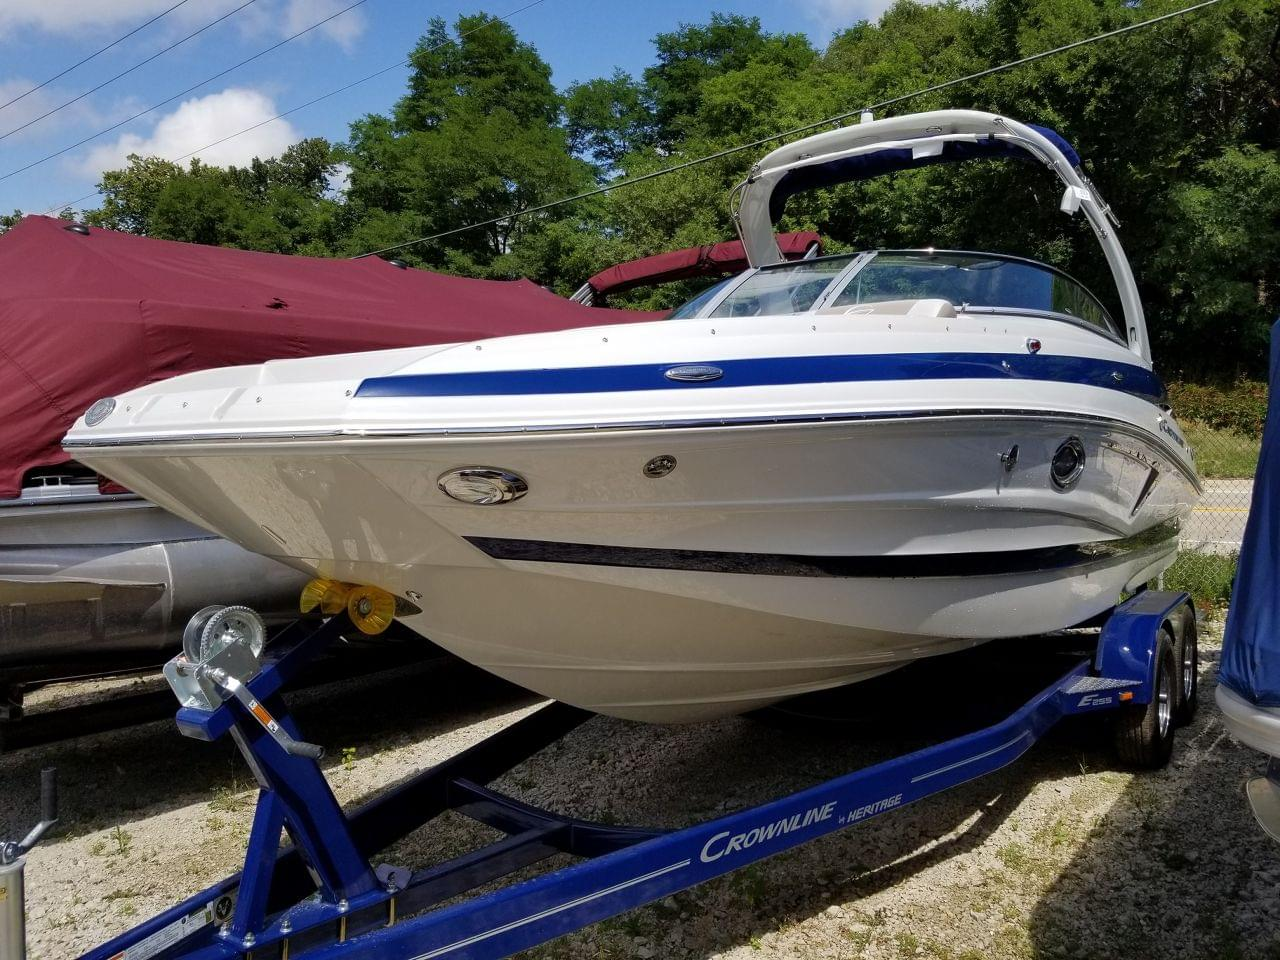 Used 2019 Crownline E255, Stock #CL54703-DEMO - The Boat House